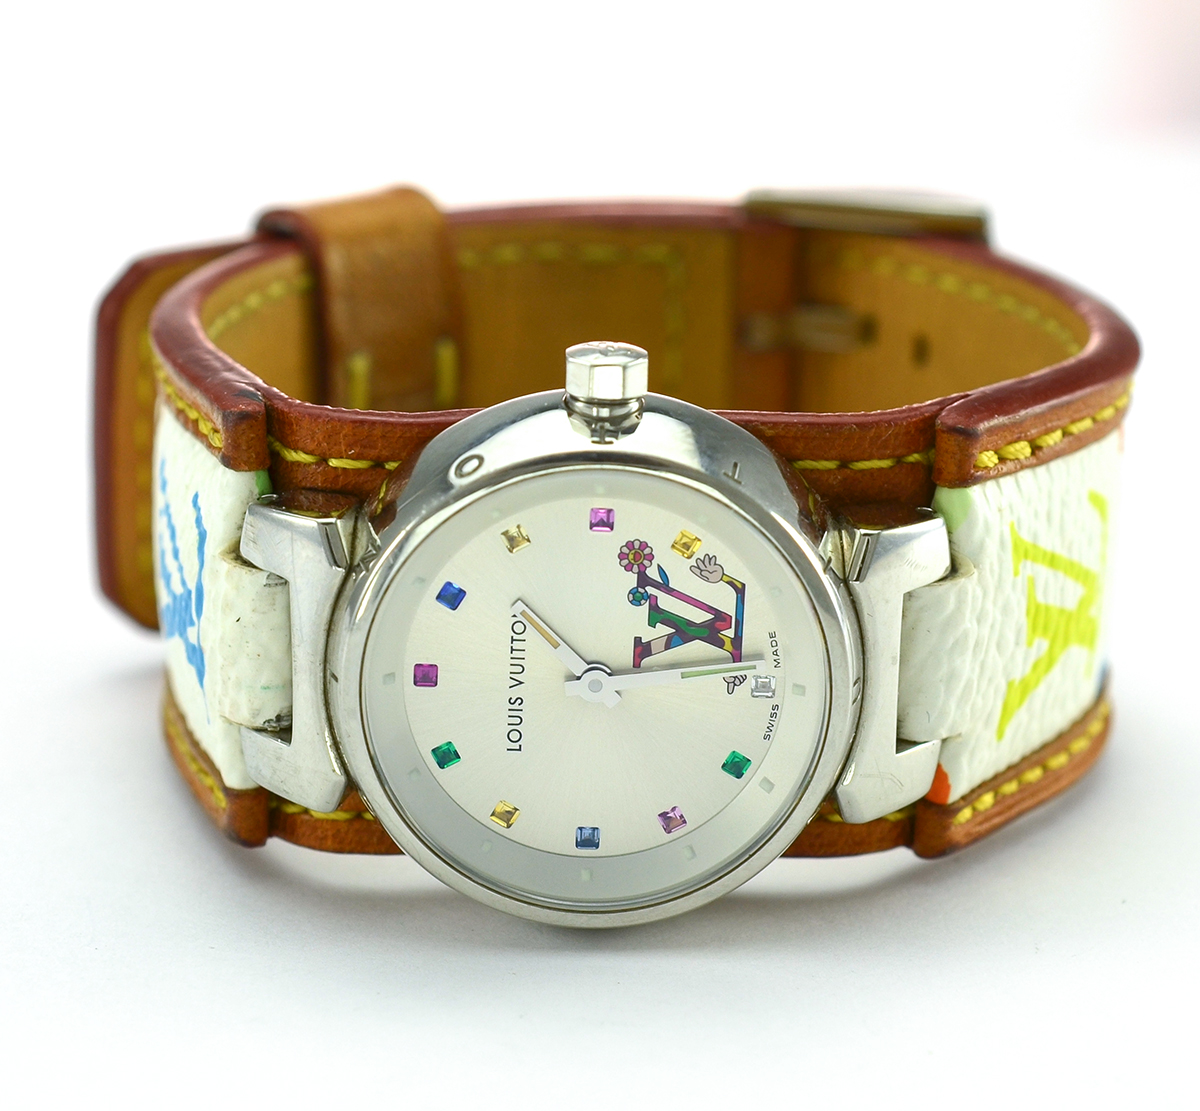 c8164ed49d1c Louis Vuitton Limited Edition Murakami Tambour Stainless Steel Lady s Watch  on Multi - Colored Monogram Coated Canvas Strap With Leather Trim